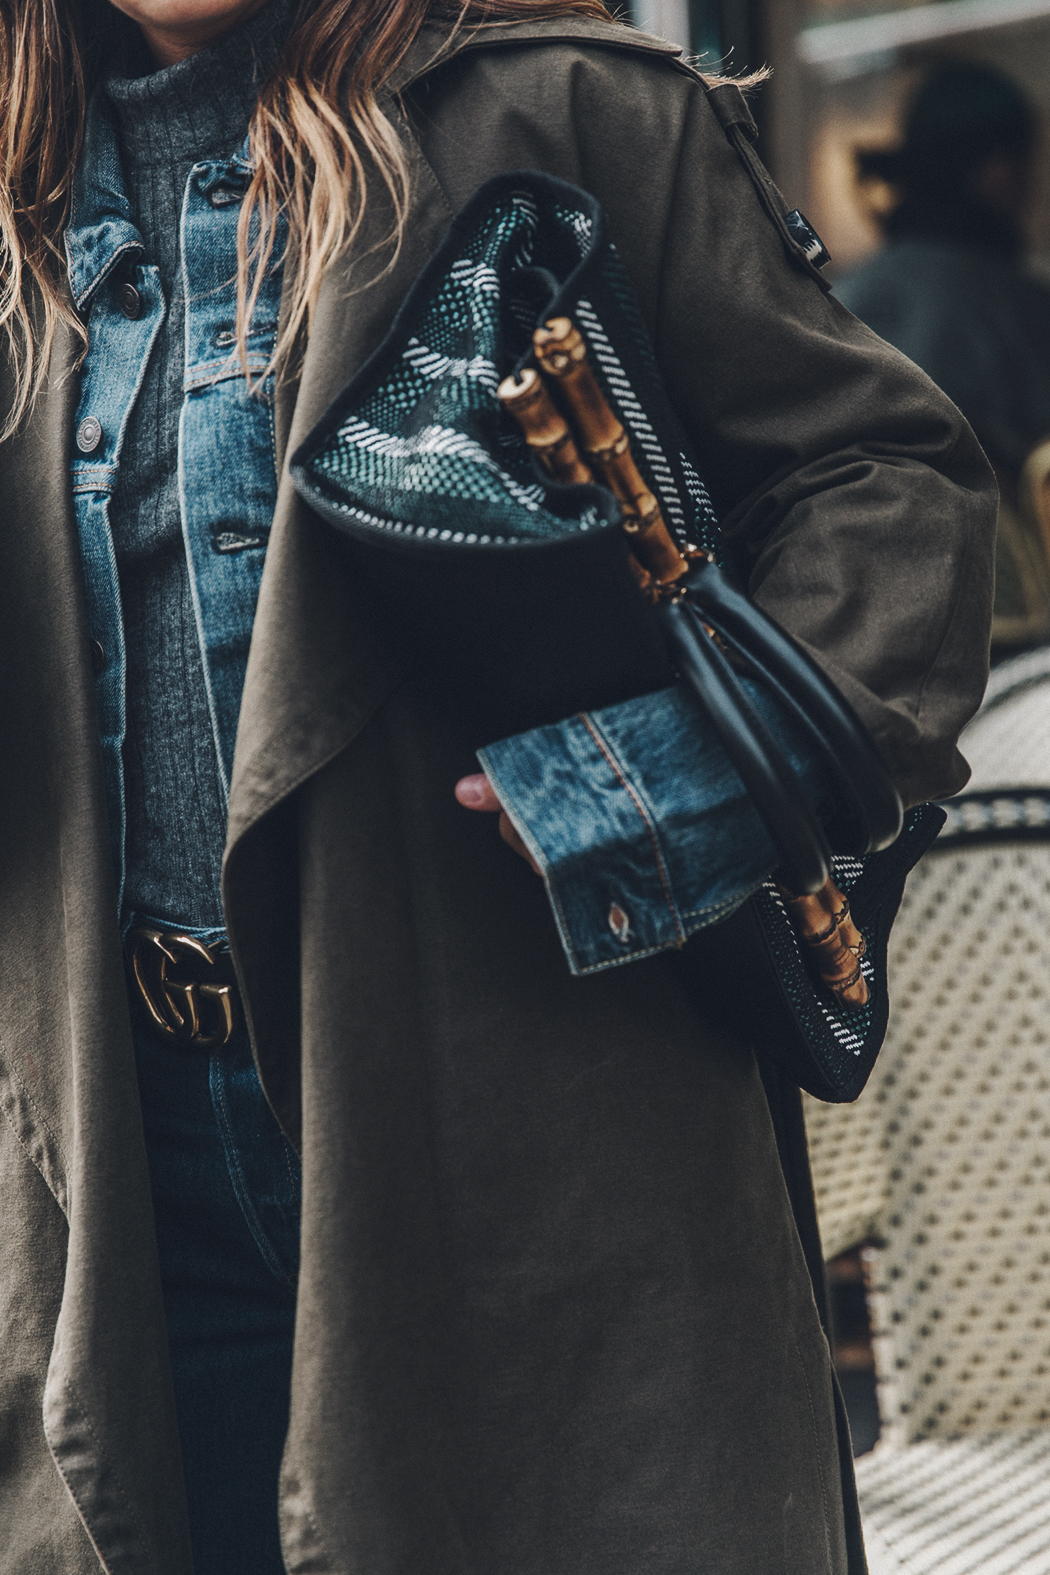 Layers-Denim_Levis-Parka-Striiped_Basket-Outfit-Celine_Boots-Street_Style-5